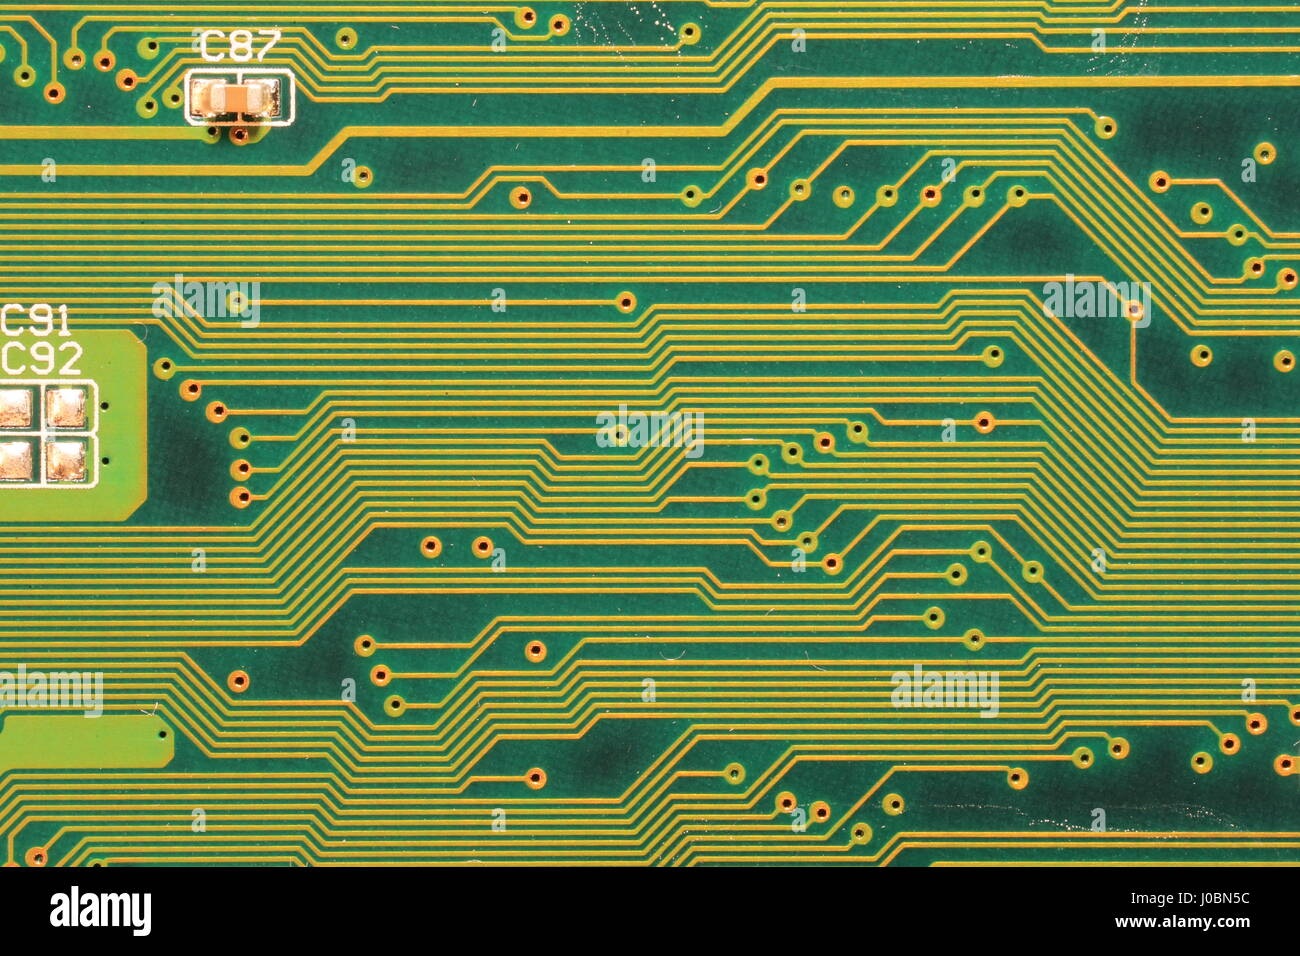 High Tech Computer Printed Circuit Board Pcb Showing Close Up Assembly Buy Boardpcb Detail Of Circuitry